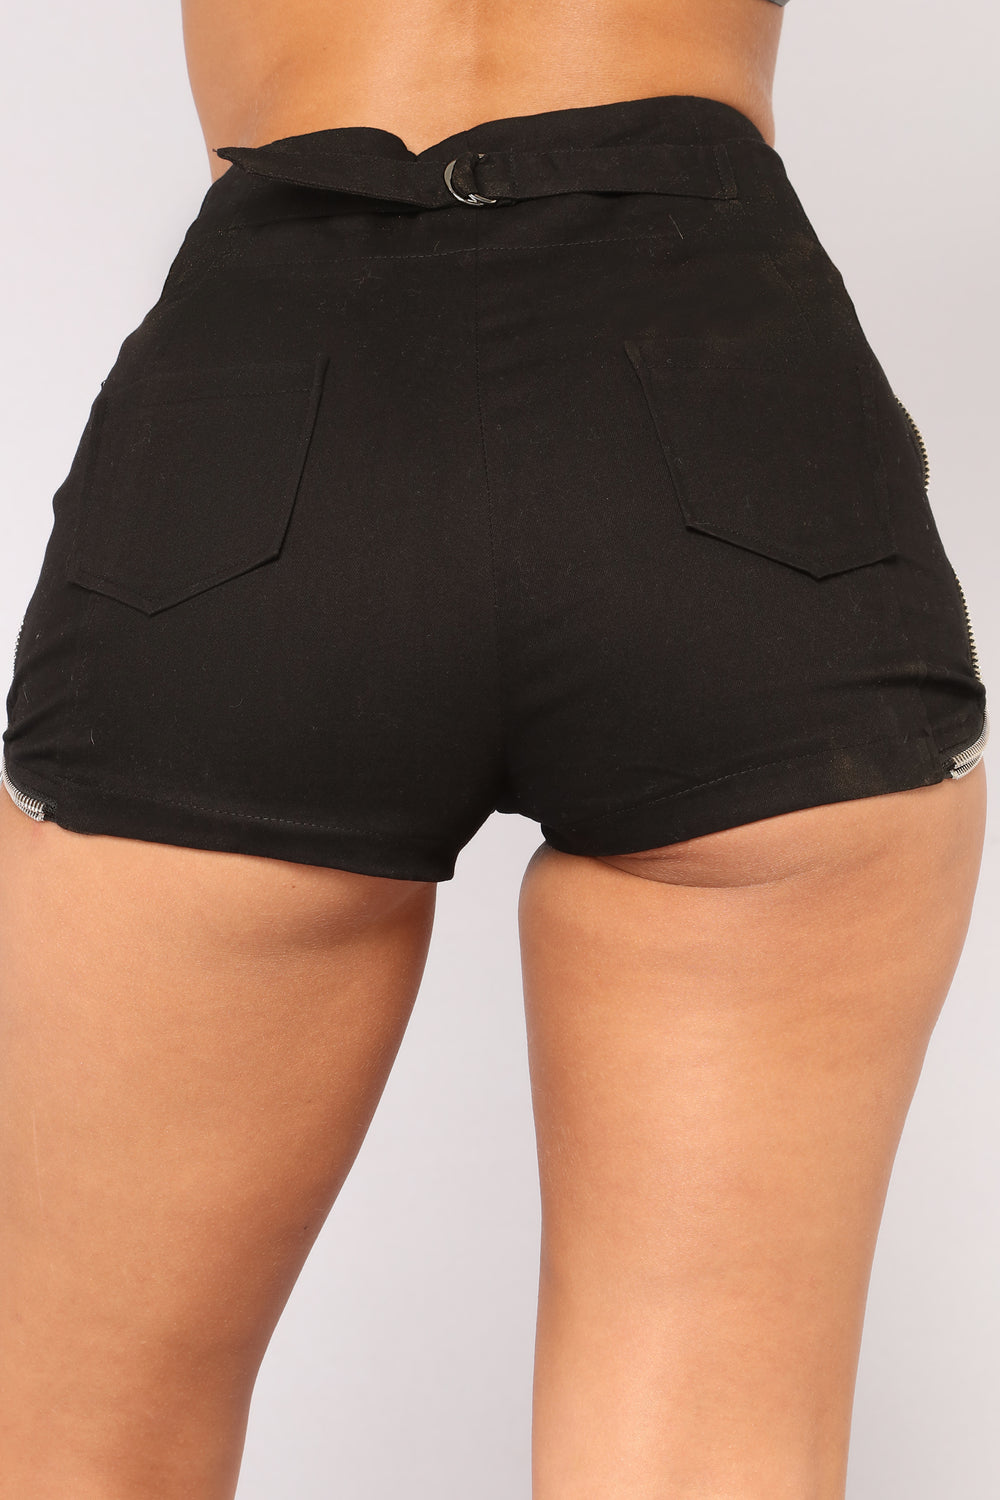 Can't Zip Me Shorts - Black